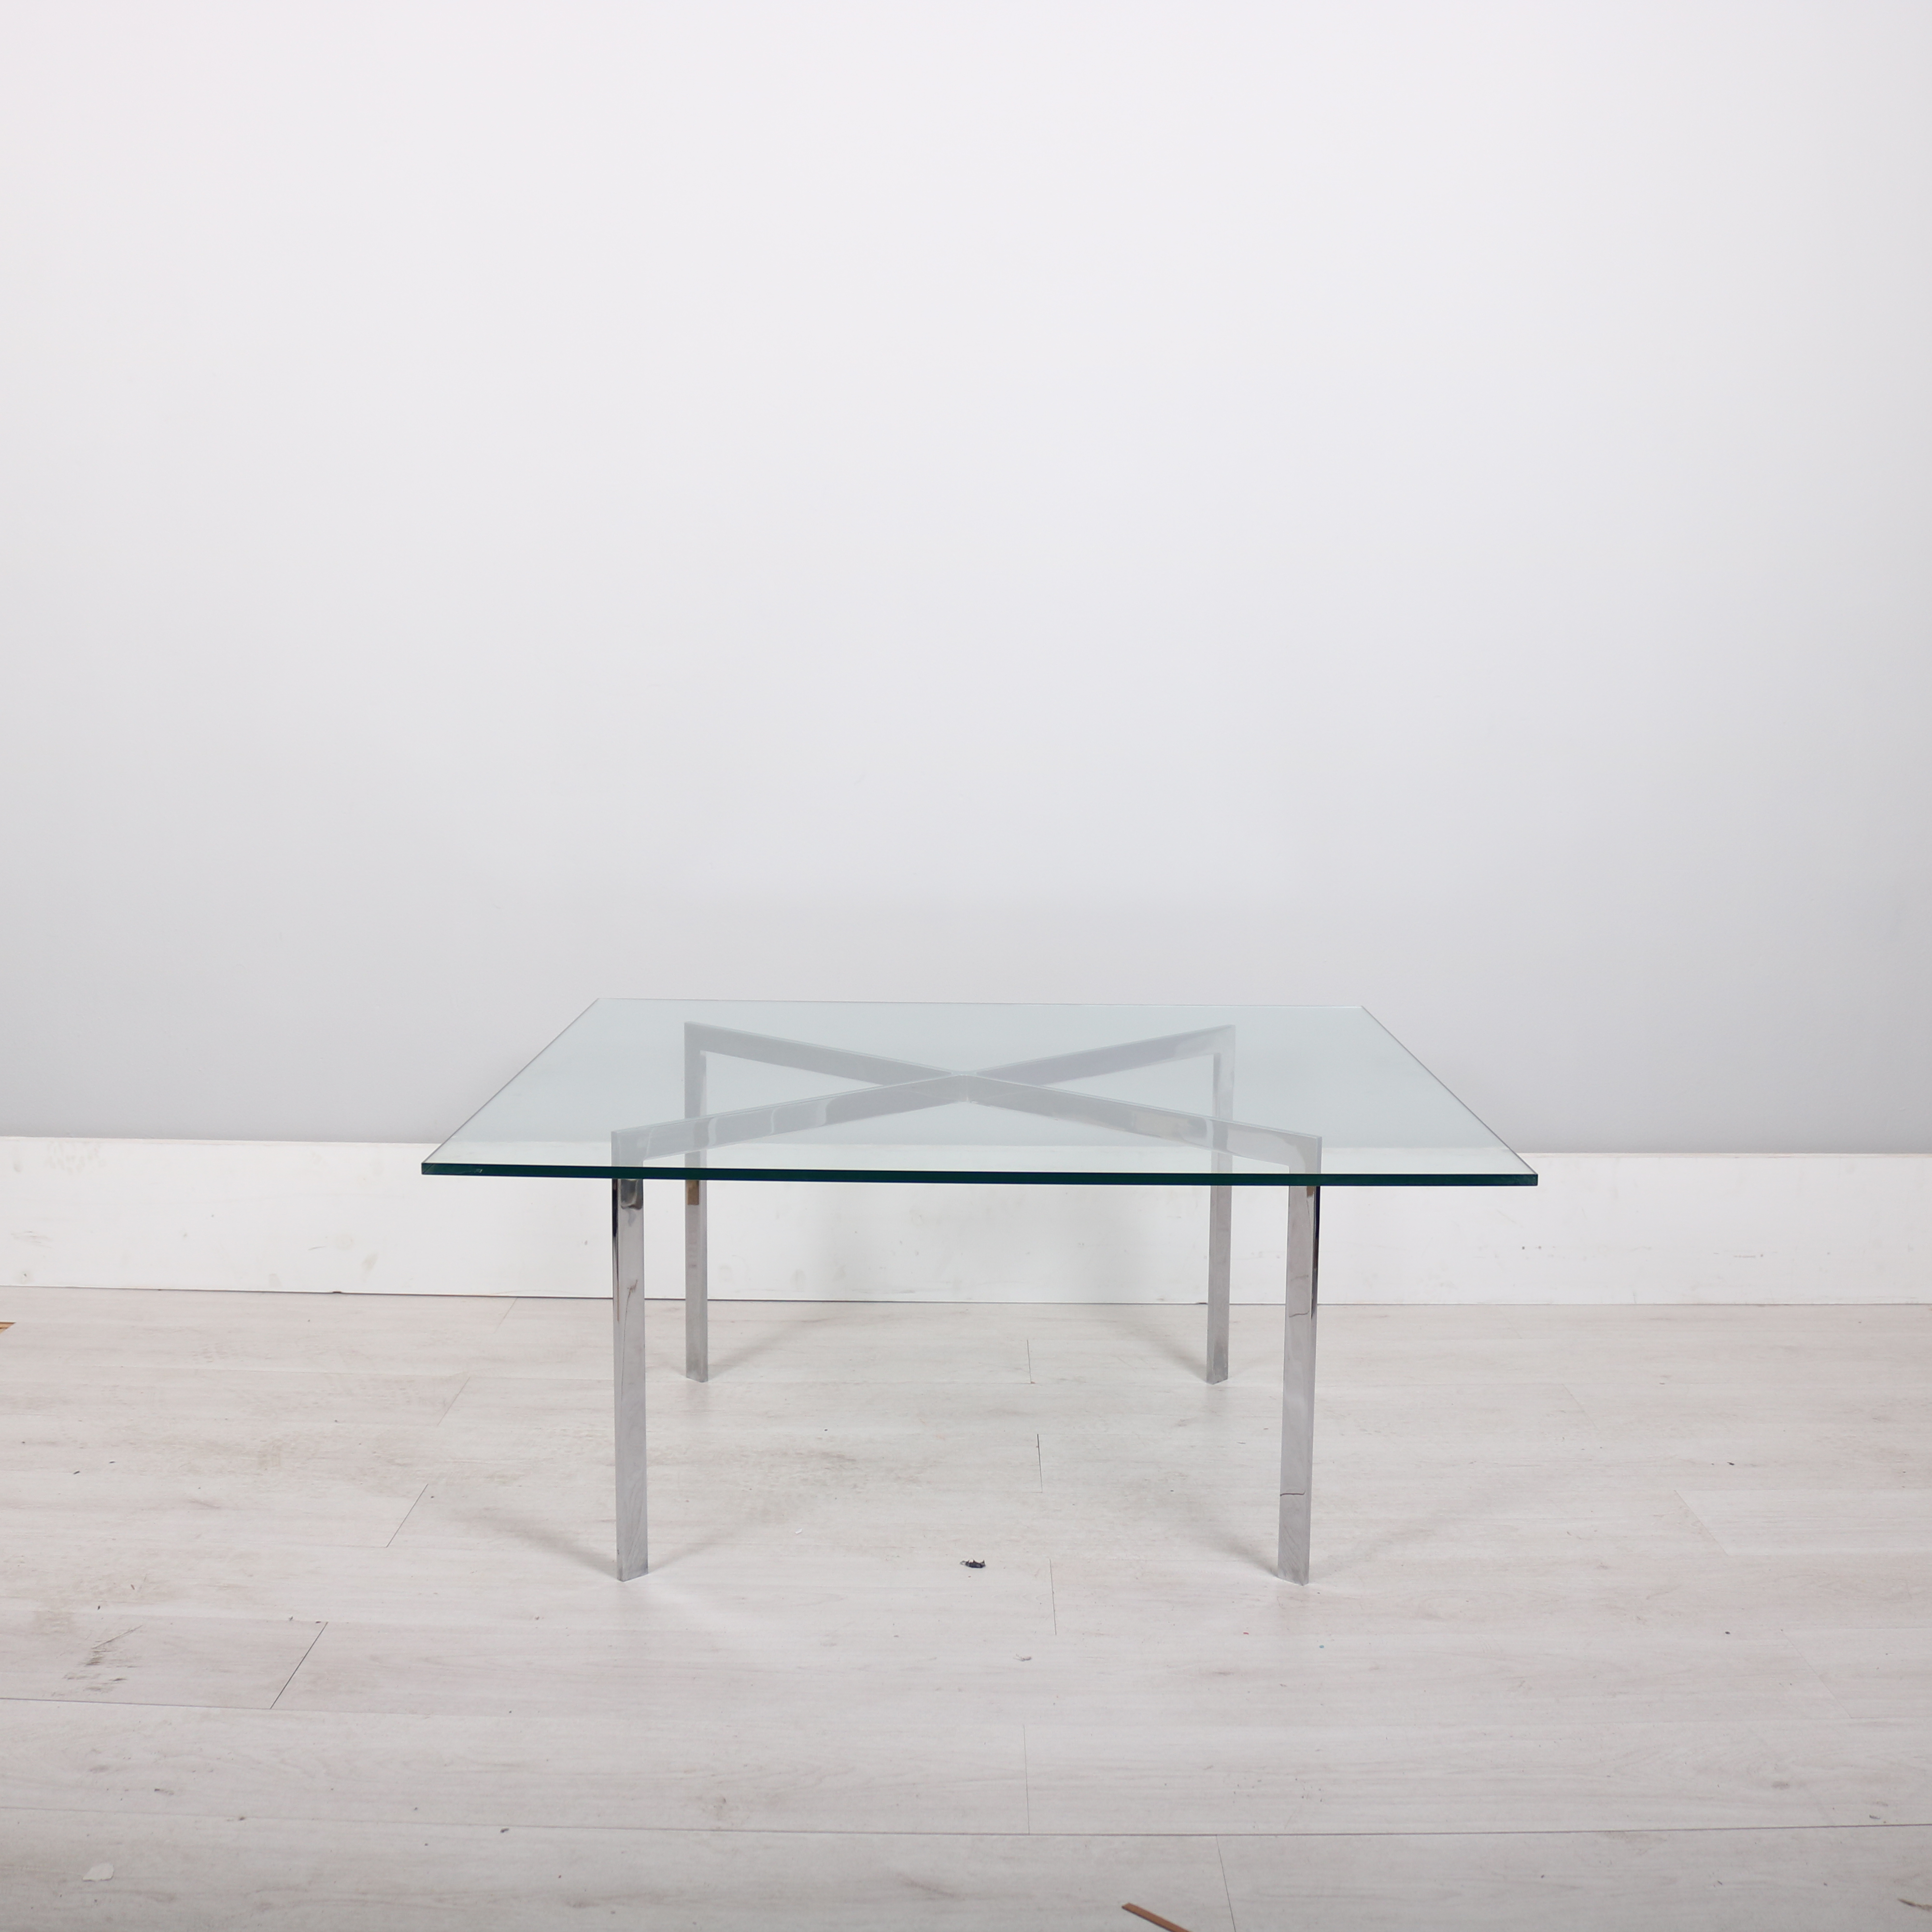 Perfect Knoll Studio Mies Van Der Rohe Barcelona Table. IMG_6307